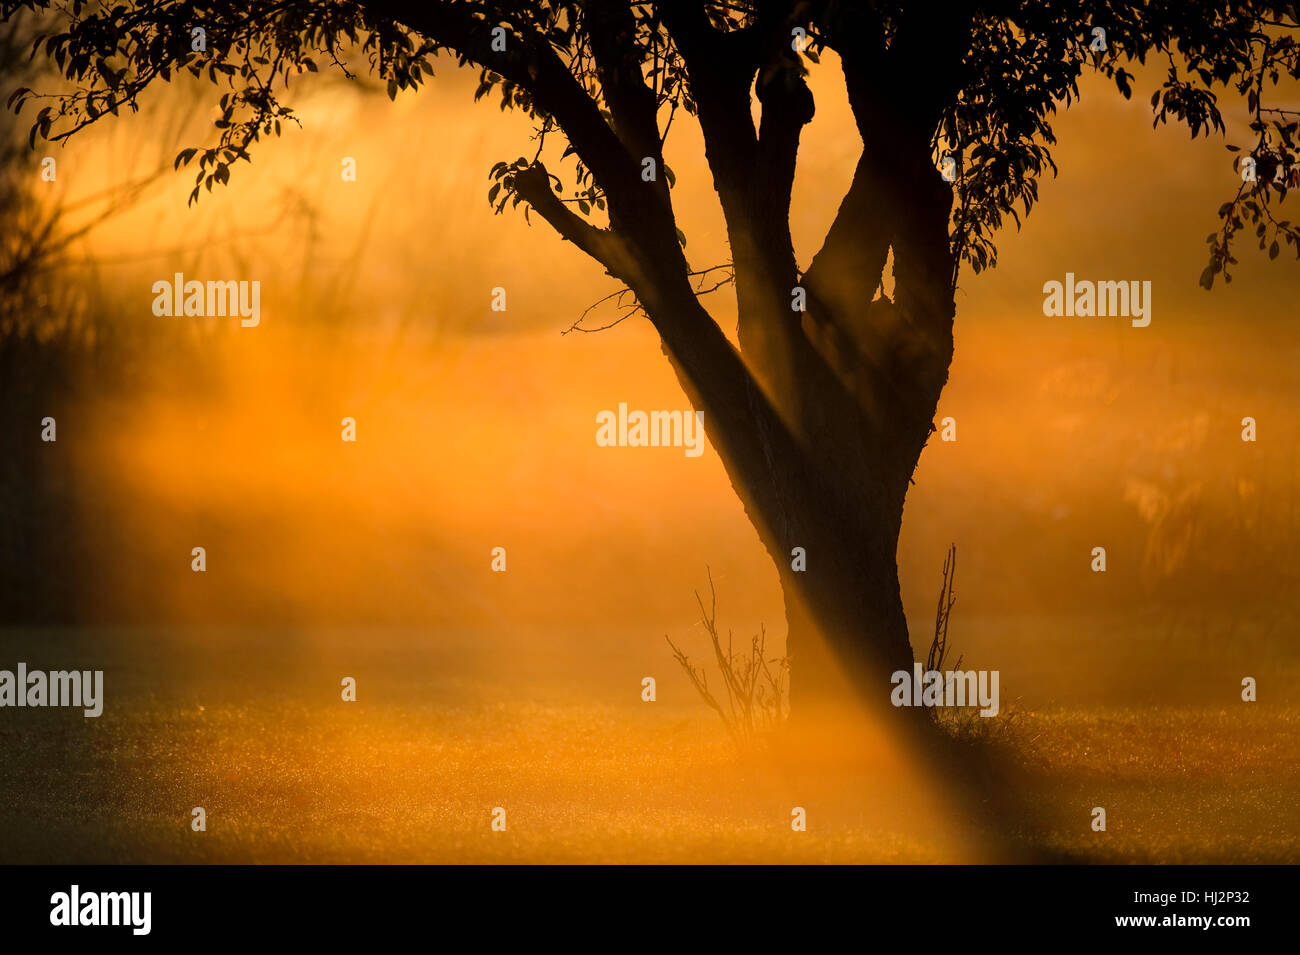 A tree stands in an open field as the sun makes the morning fog glow a bright orange around the tree. - Stock Image